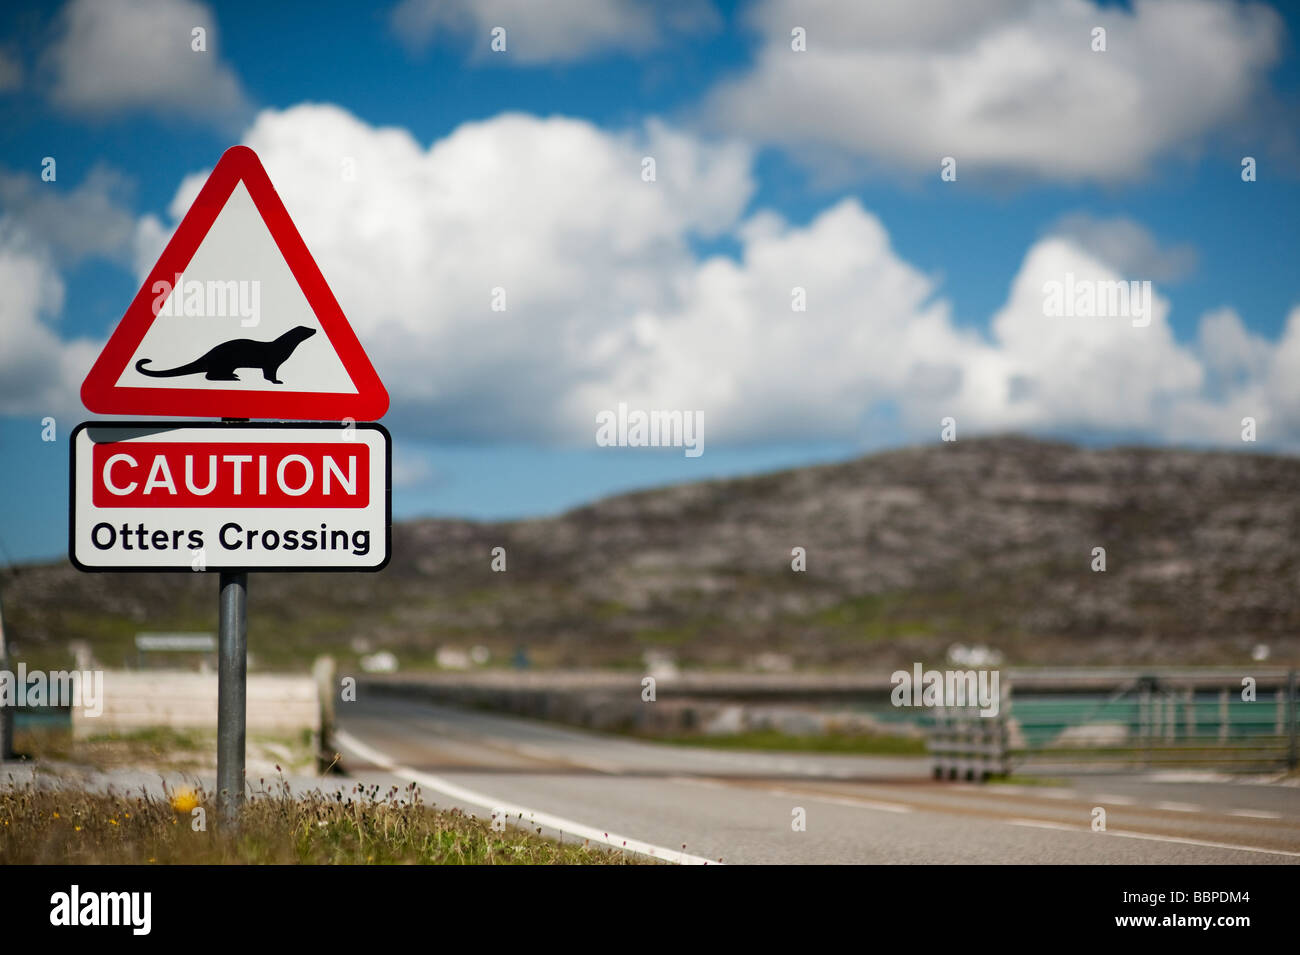 Otter crossing road sign, Eriskay causeway, South Uist, Outer Hebrides, Scotland - Stock Image